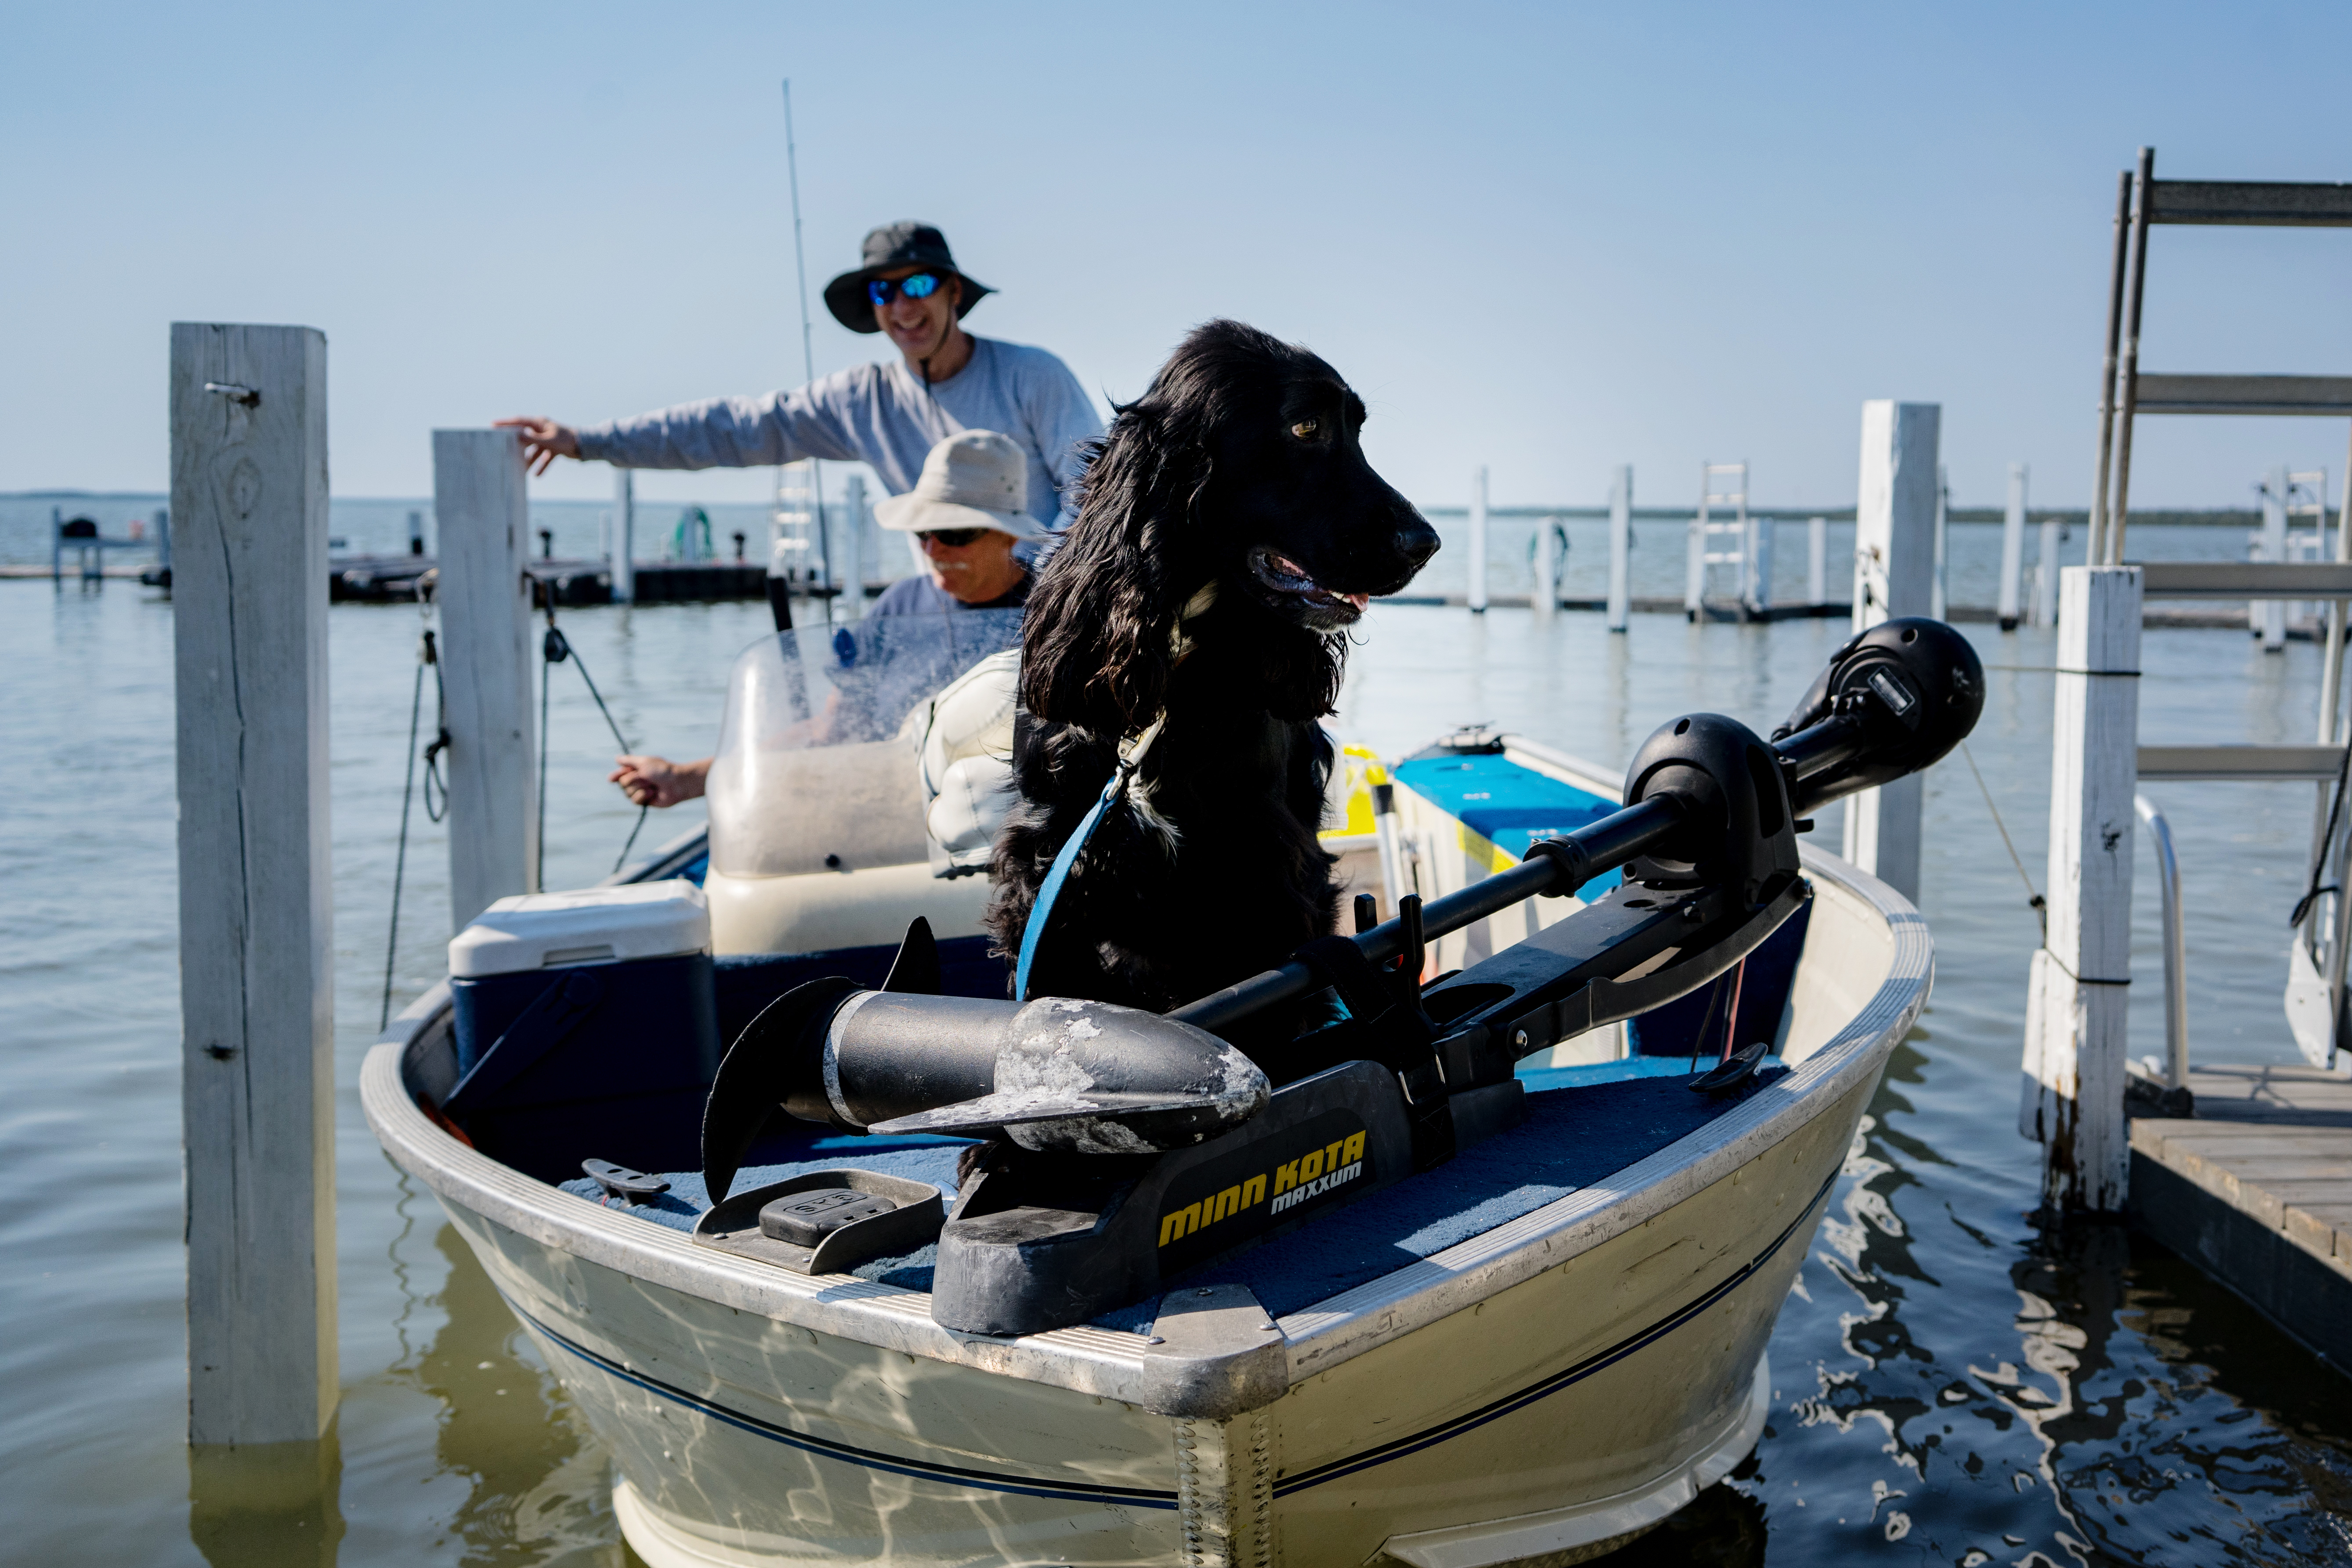 Even the dogs love to fish!